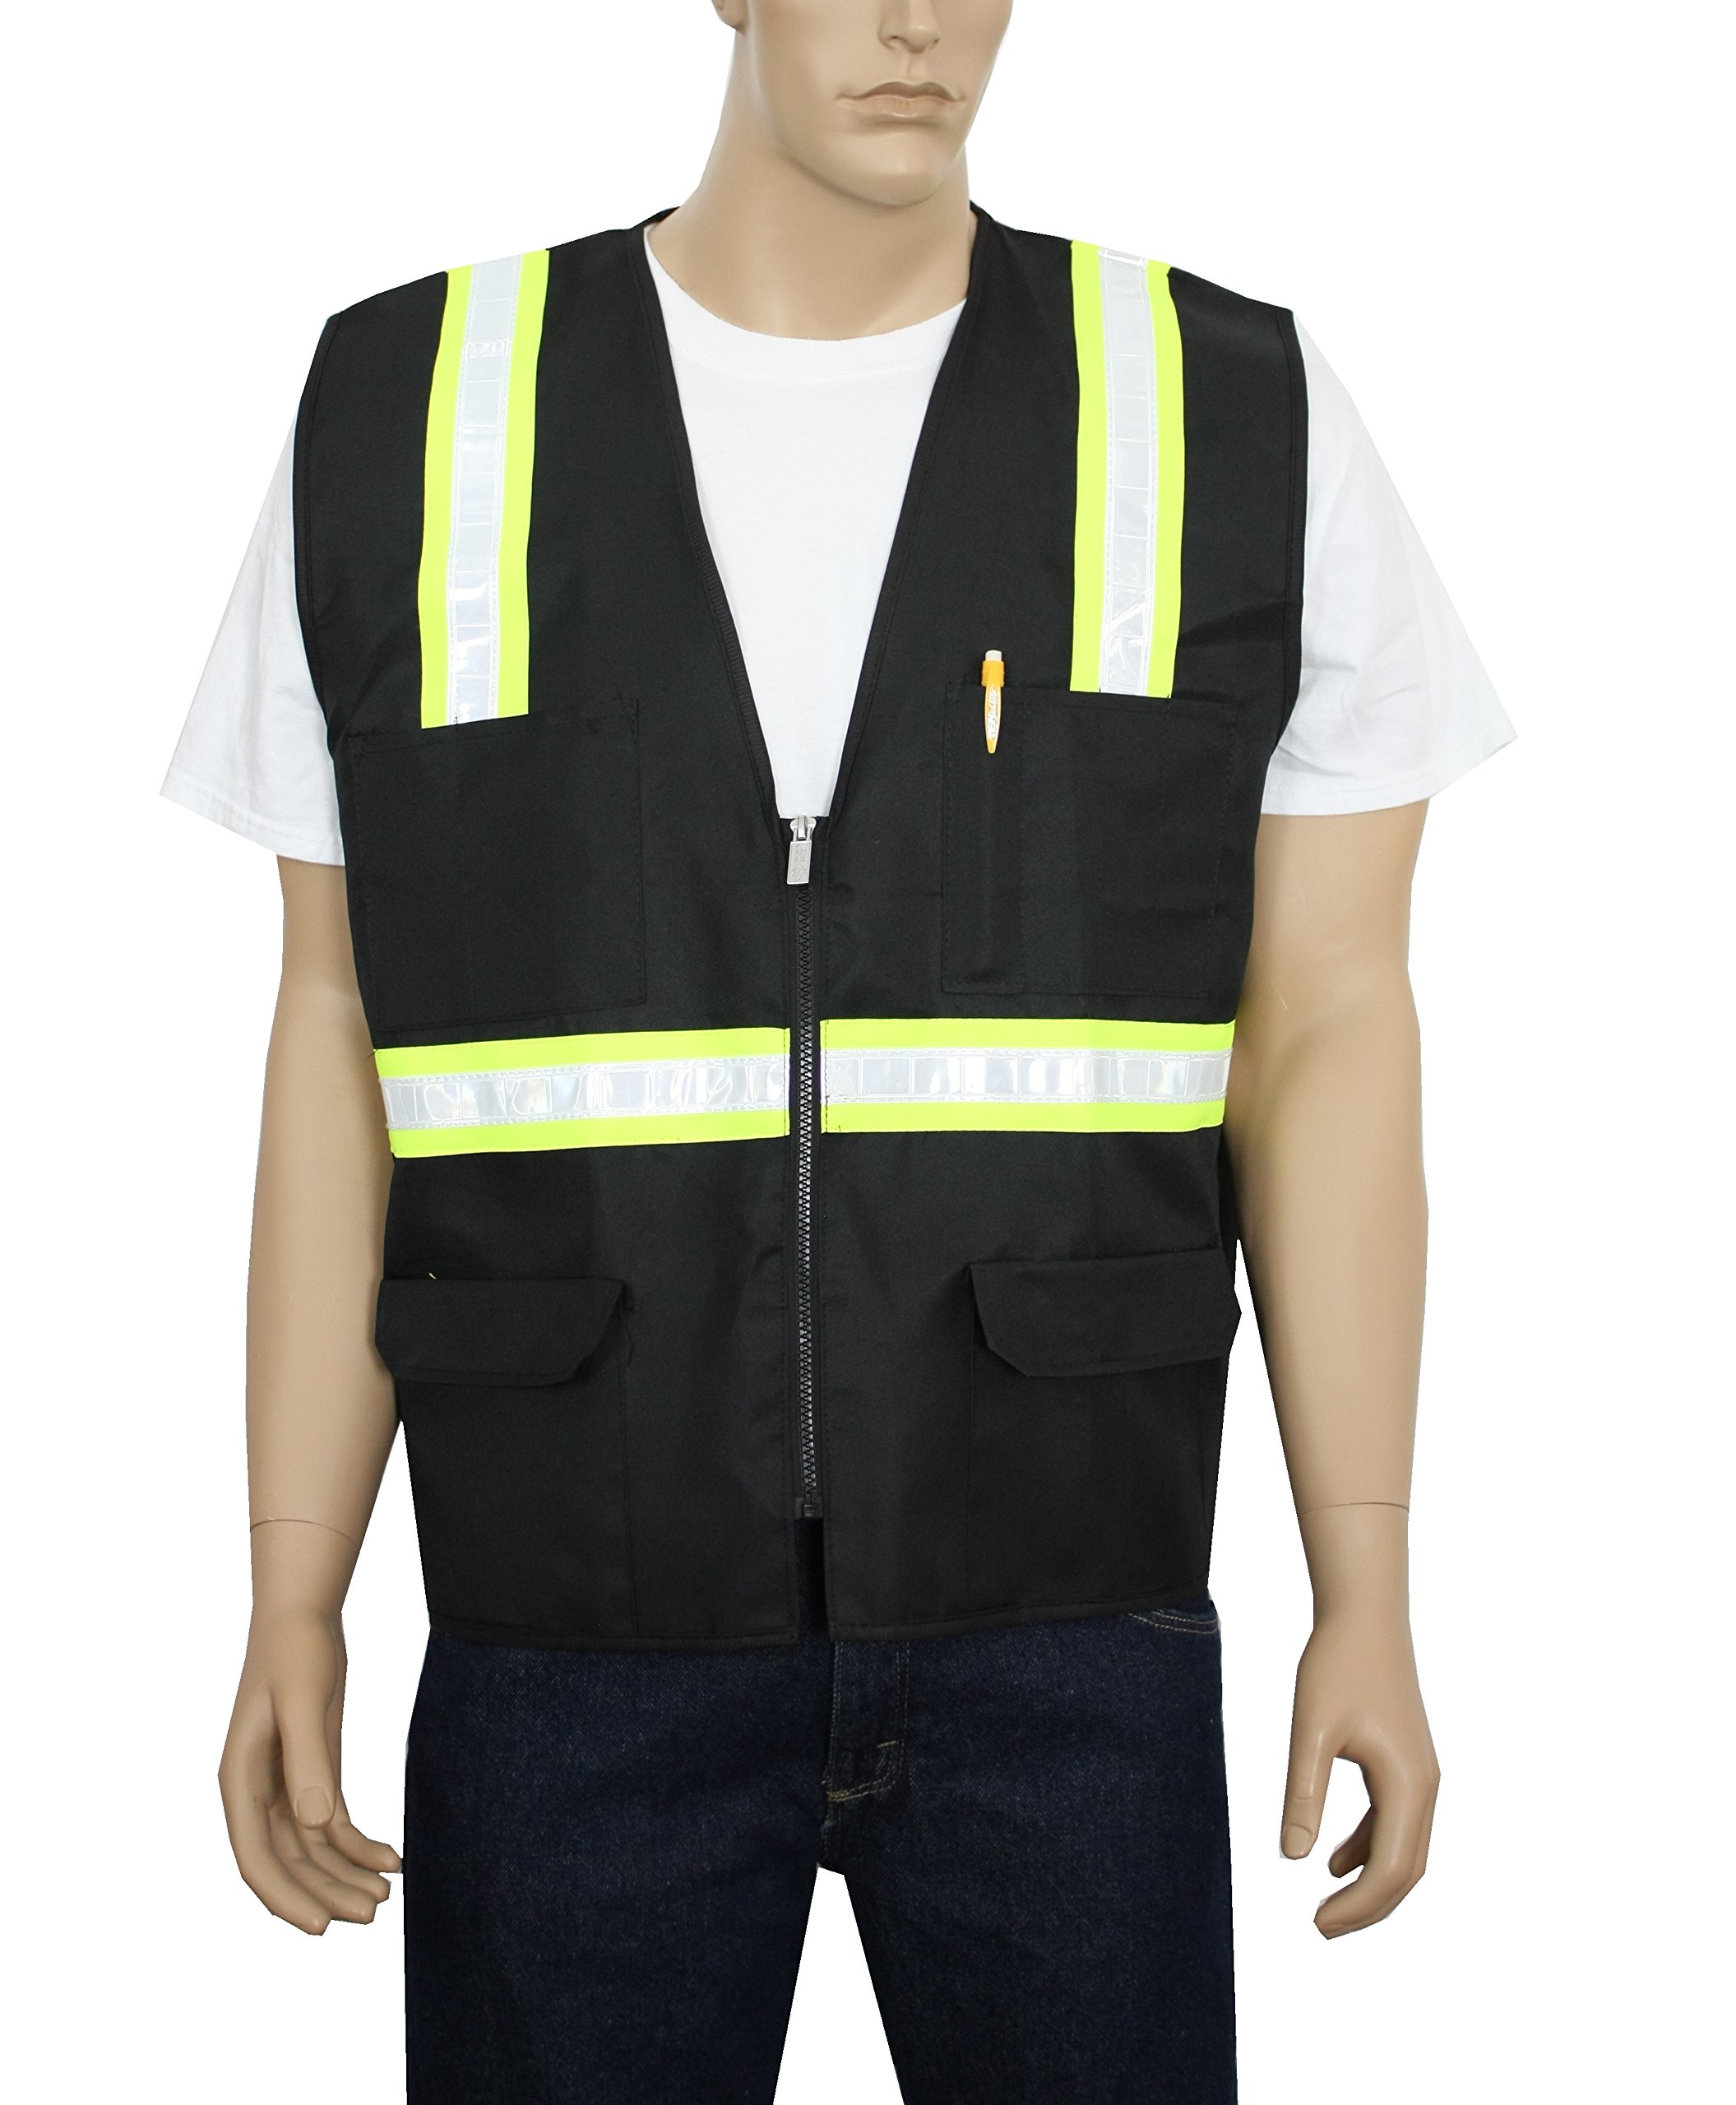 Safety Depot Safety Vest High Visibility Reflective Tape with 4 Lower Pockets, 2 Chest Pockets with Pen Dividers 8038-BK (Black, Medium)